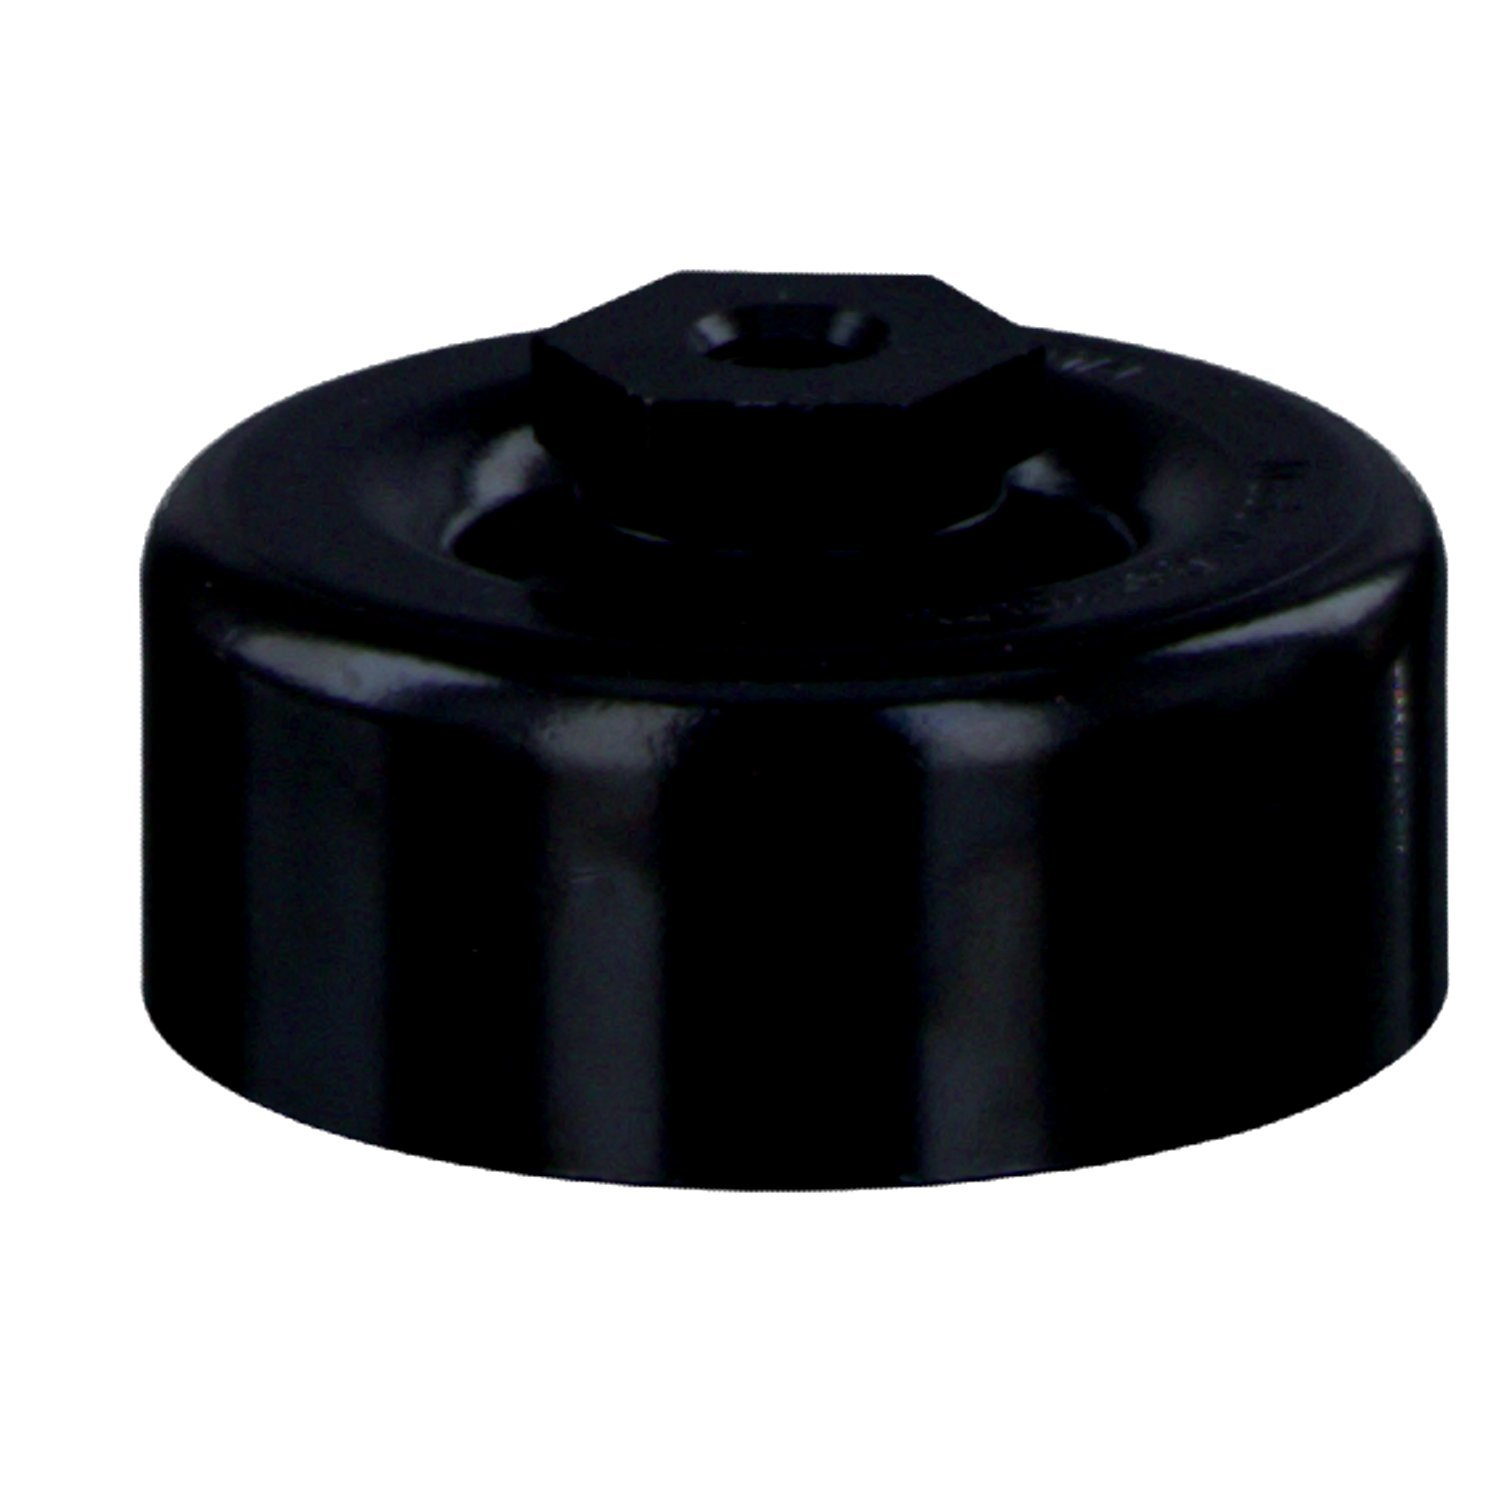 pack of one febi bilstein 34533 Tensioner Pulley for auxiliary belt with screw